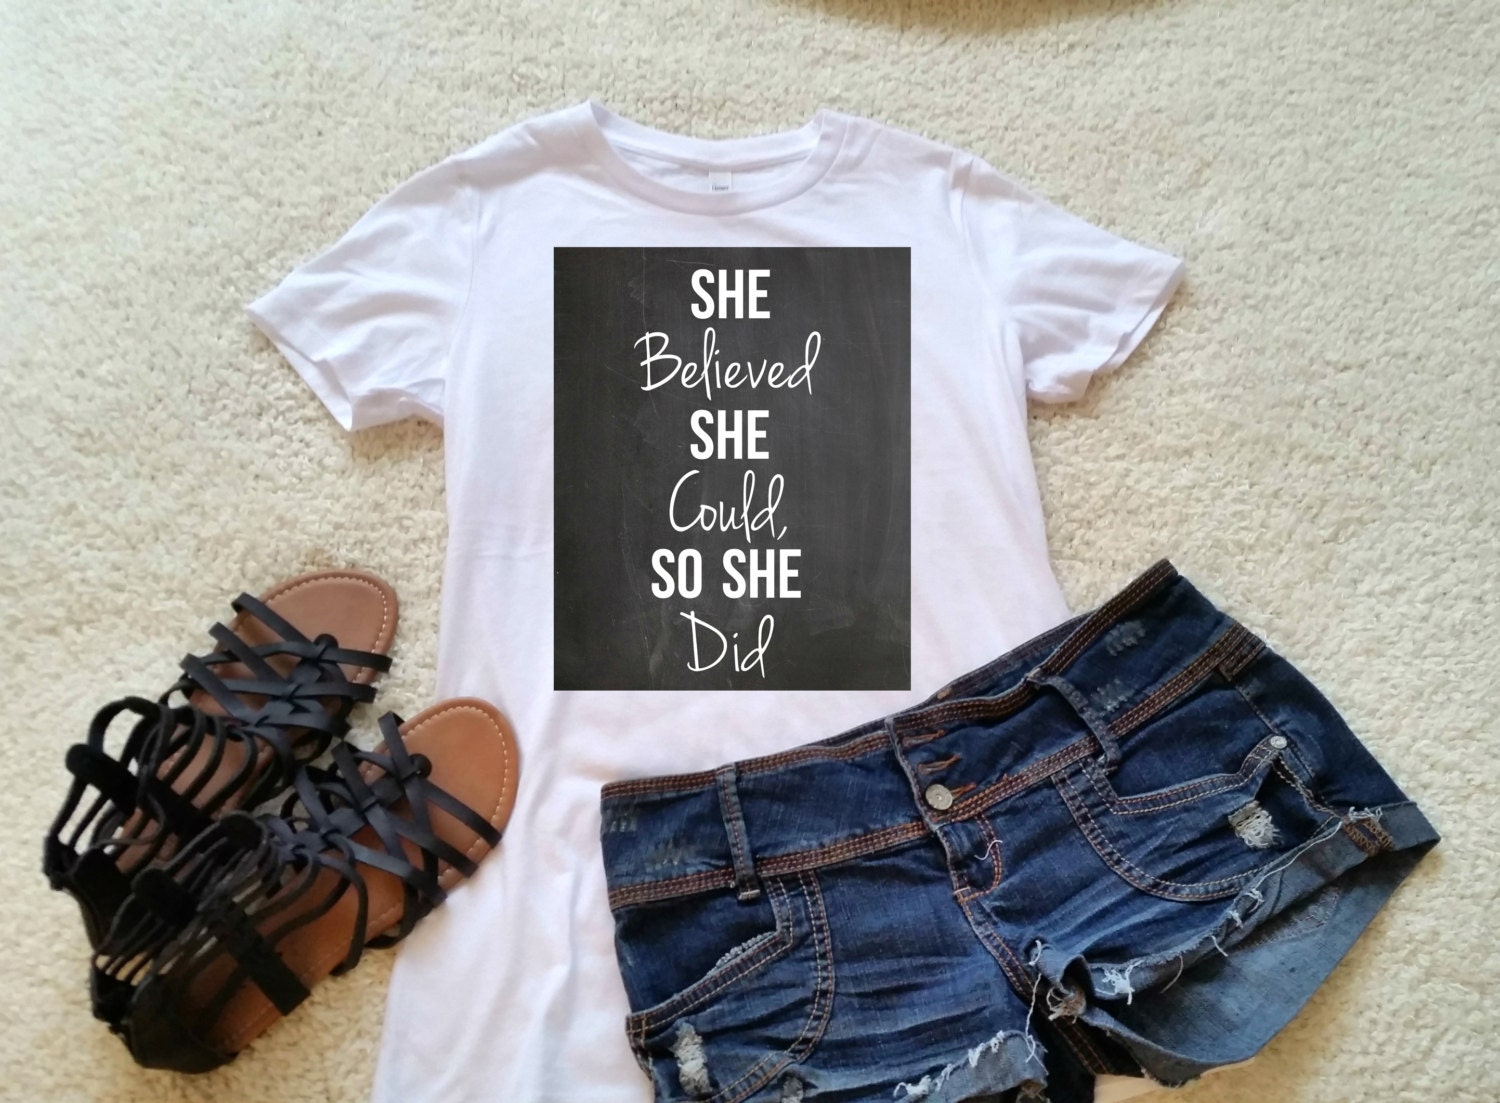 She Believed She Could So She Did Quote T-shirt Available In